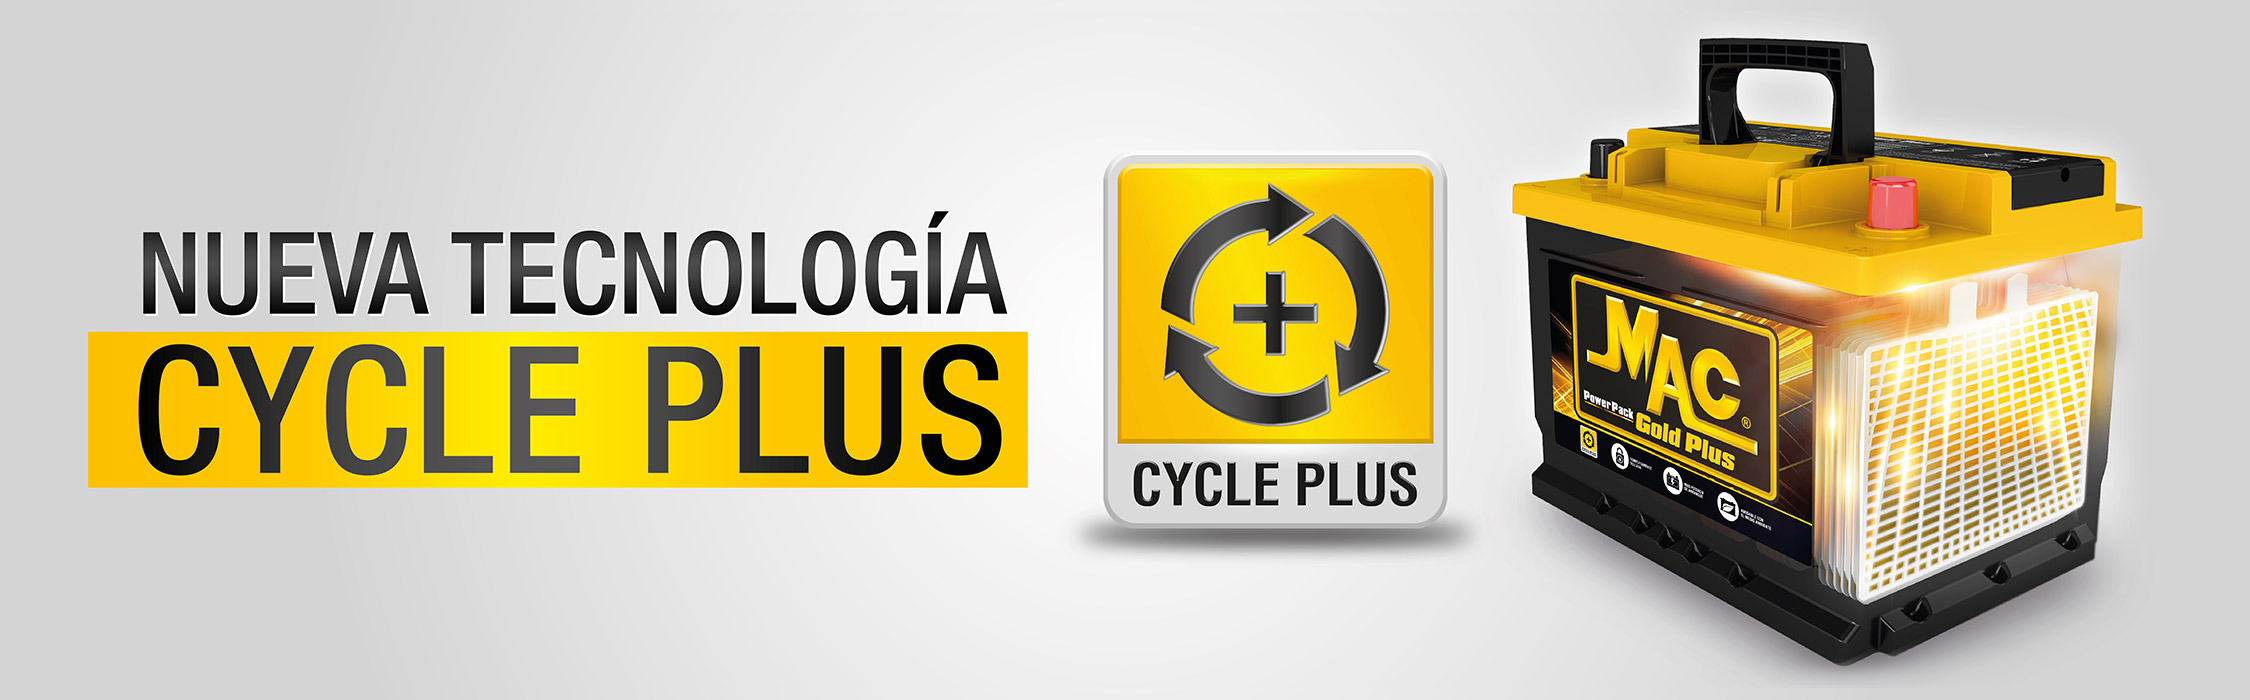 Nueva Technologia Cycle Plus - uno Gold Plus bateria